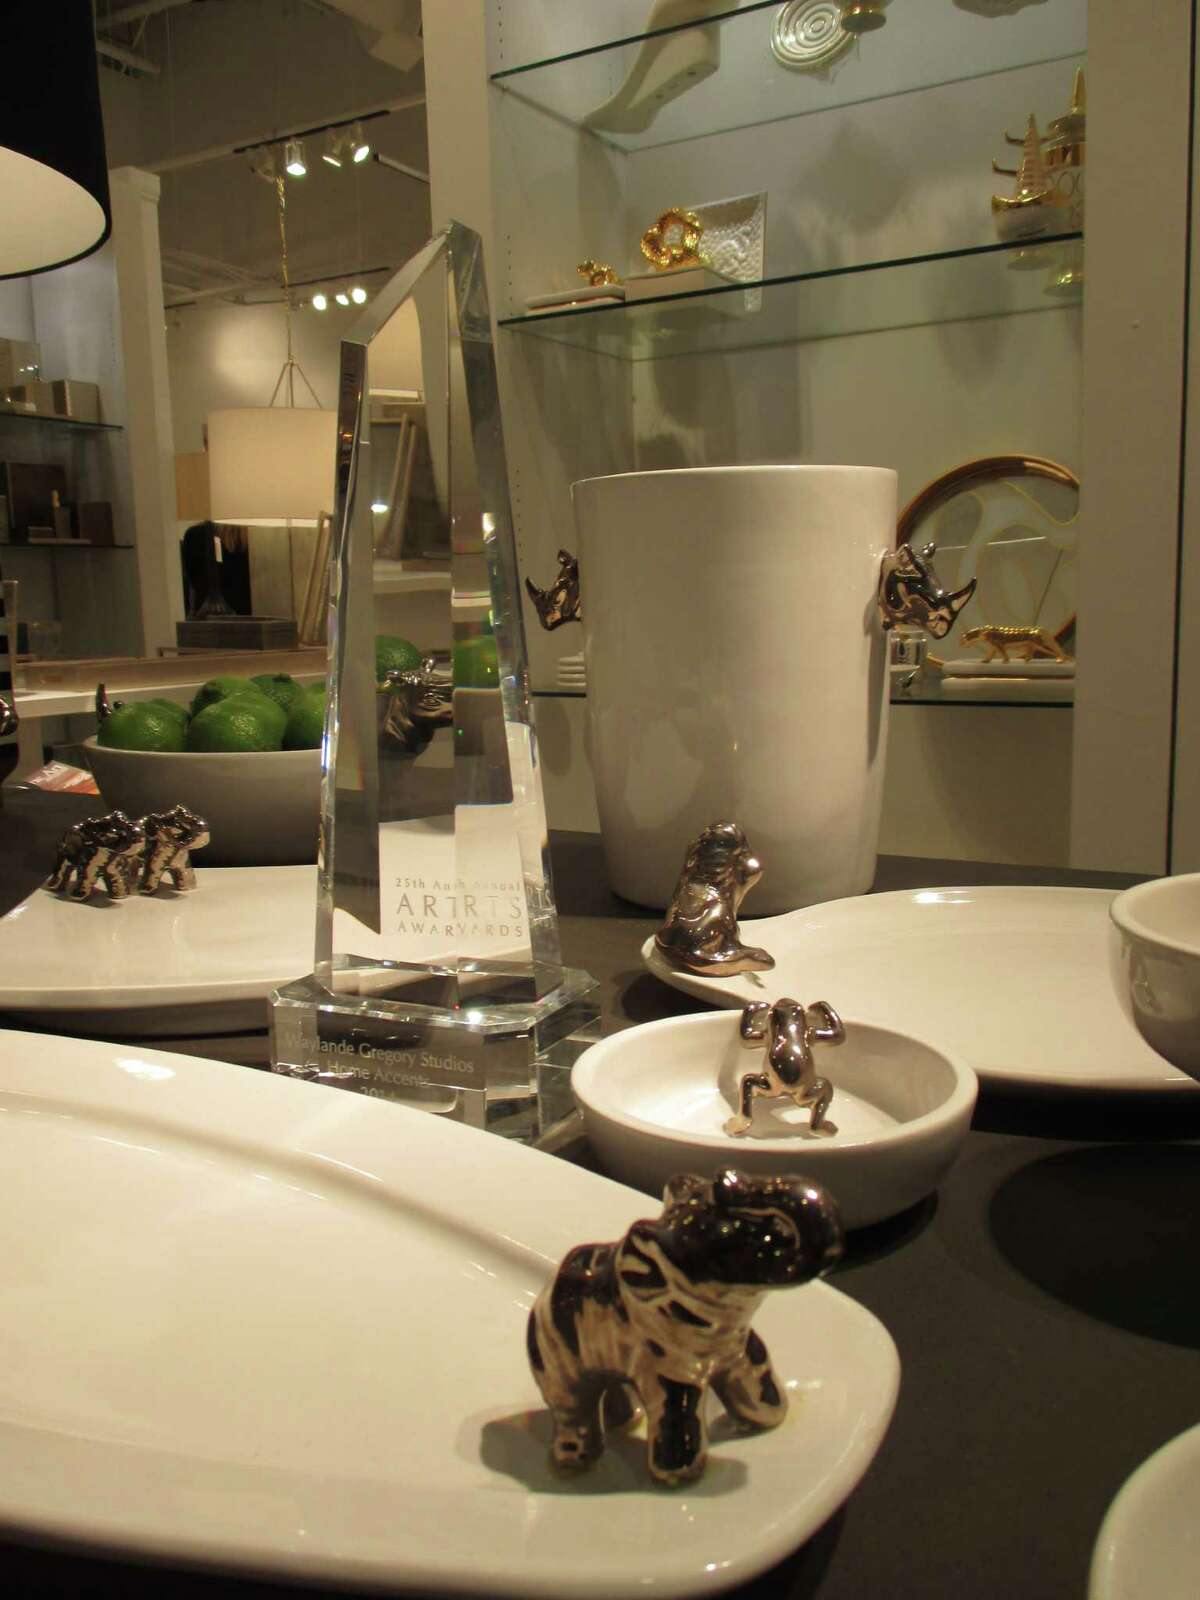 Houston's Waylande Gregory Studios won the 25th Annual ARTS Award for Home Accents in 2014.